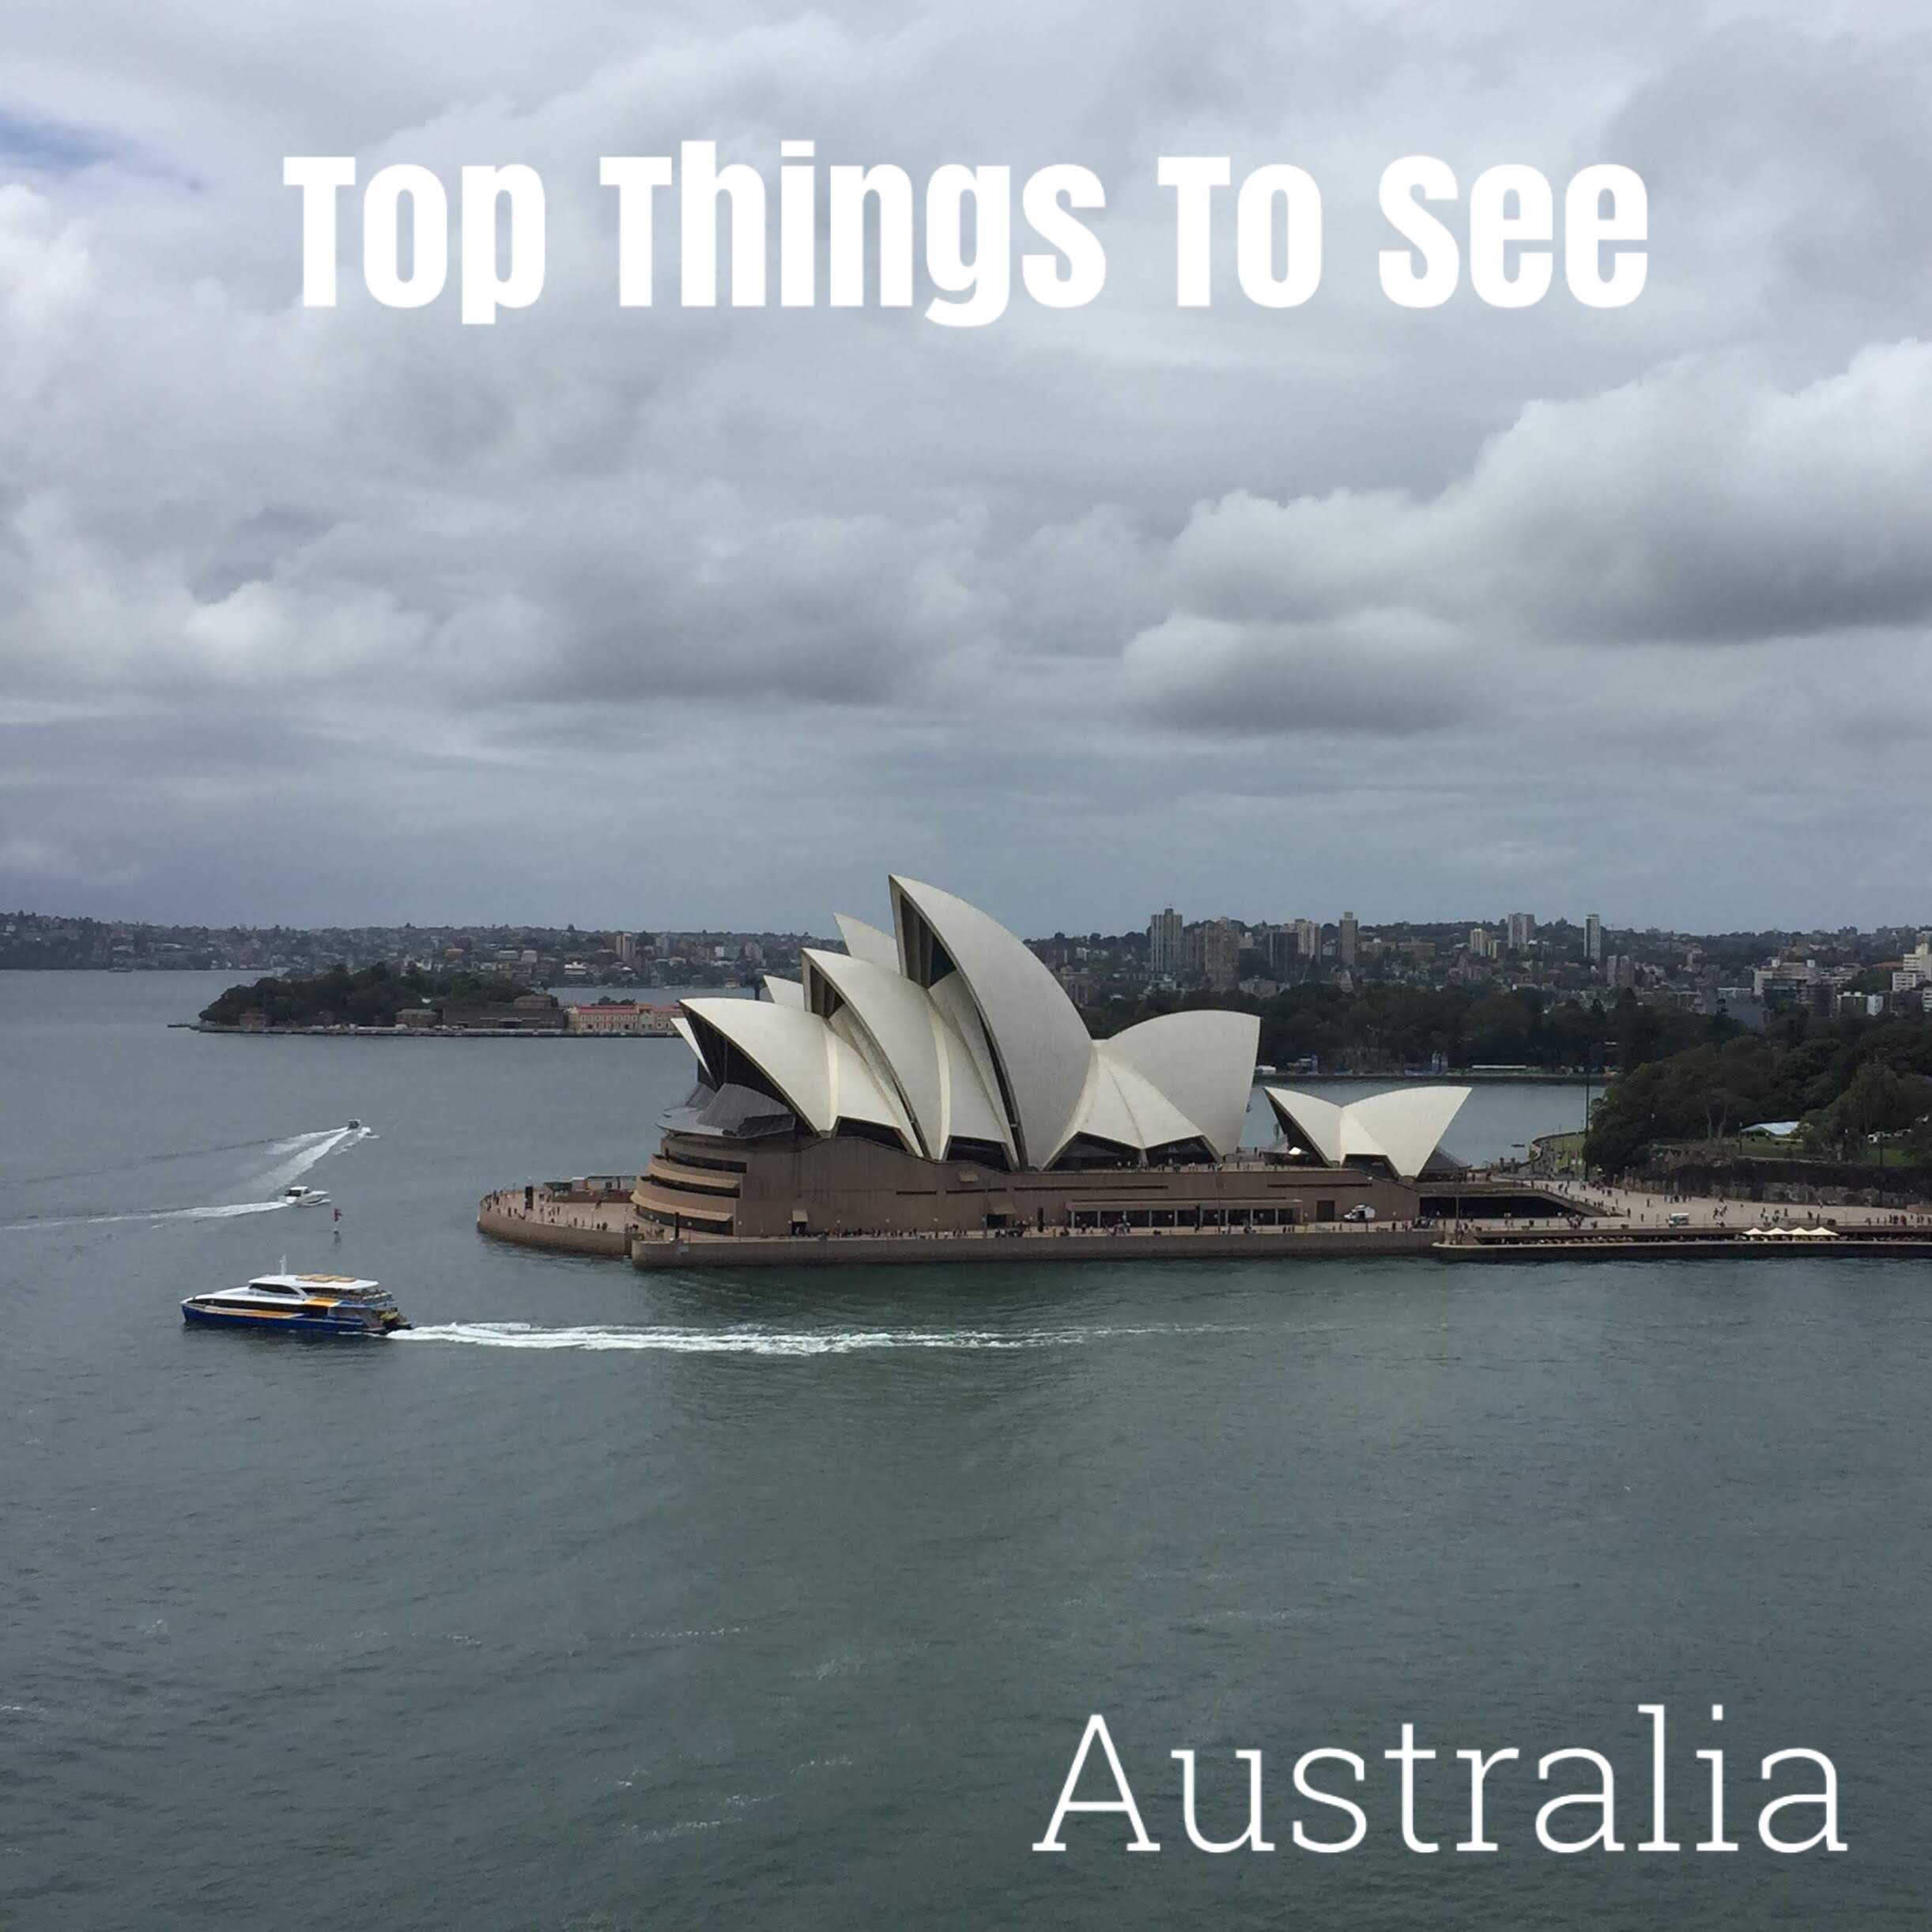 Top things to see, australia,